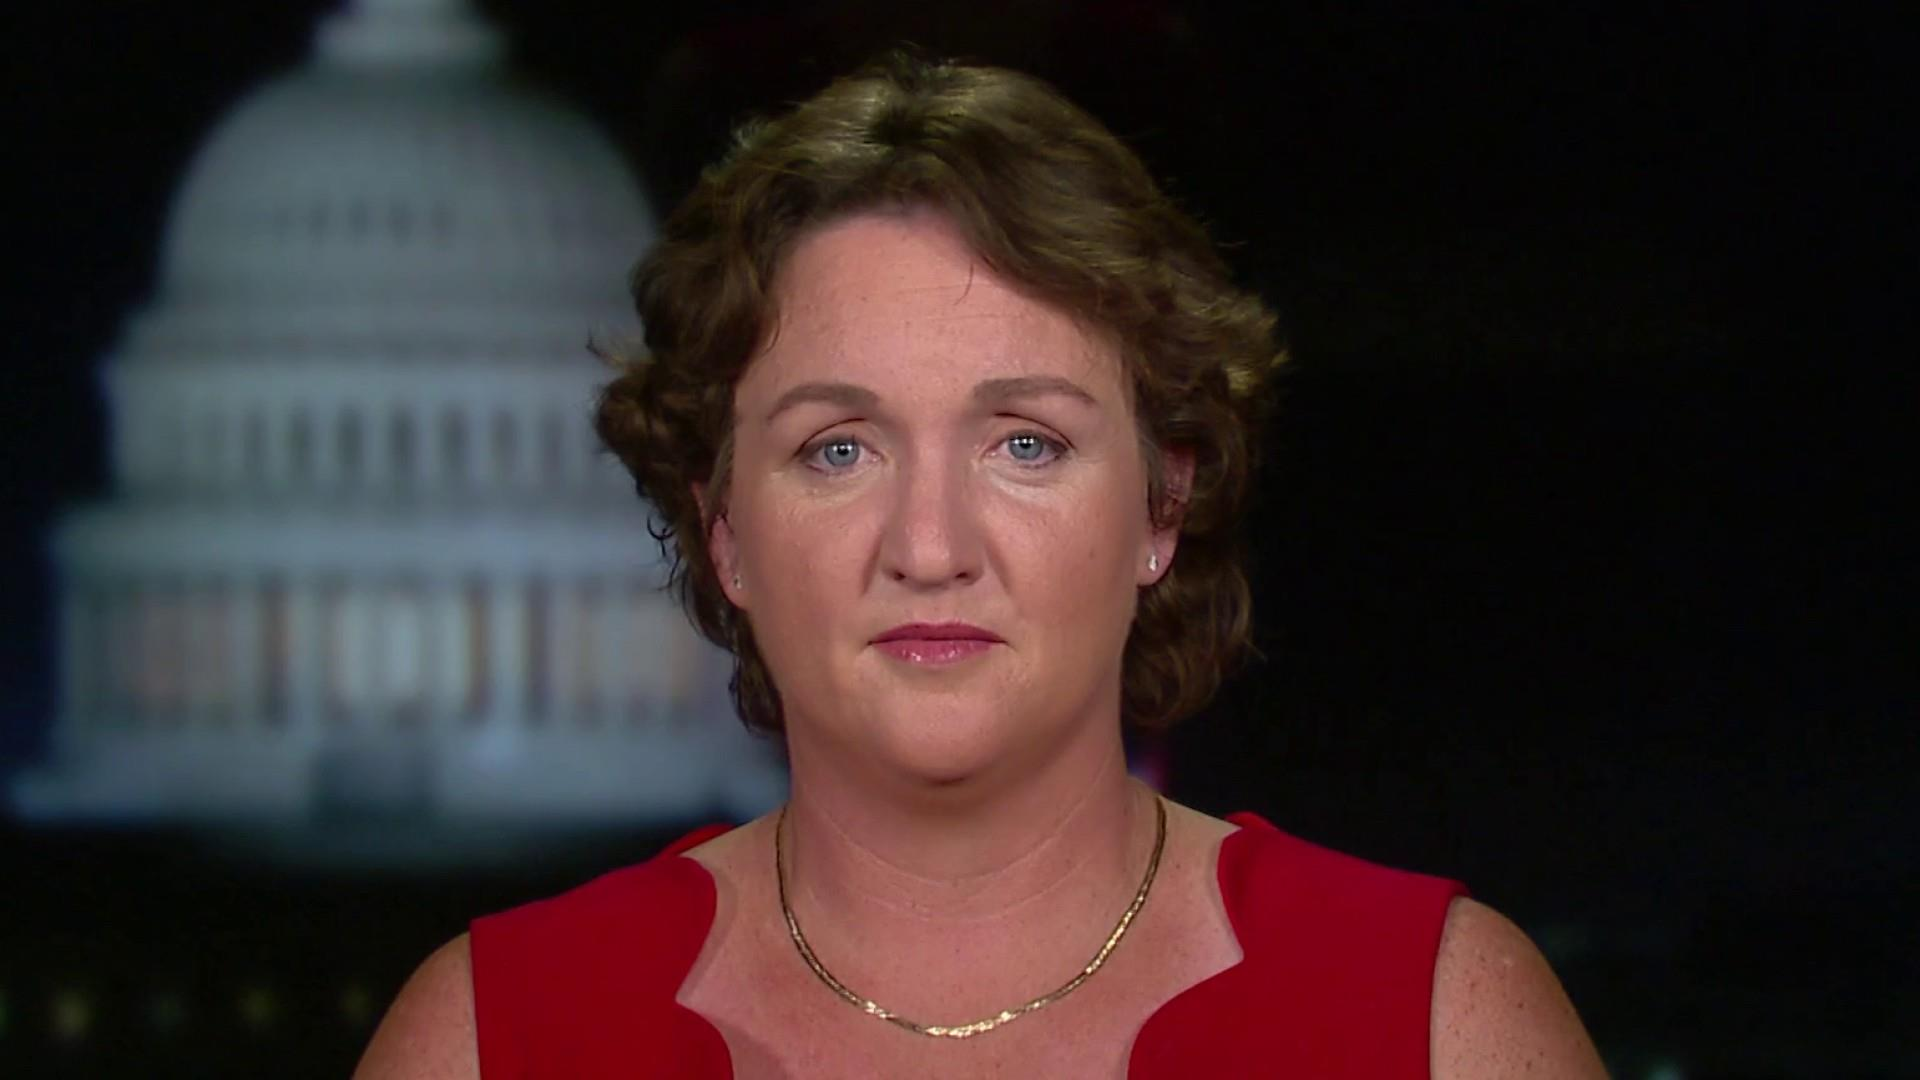 Rep. Katie Porter challenging big business on fair pay